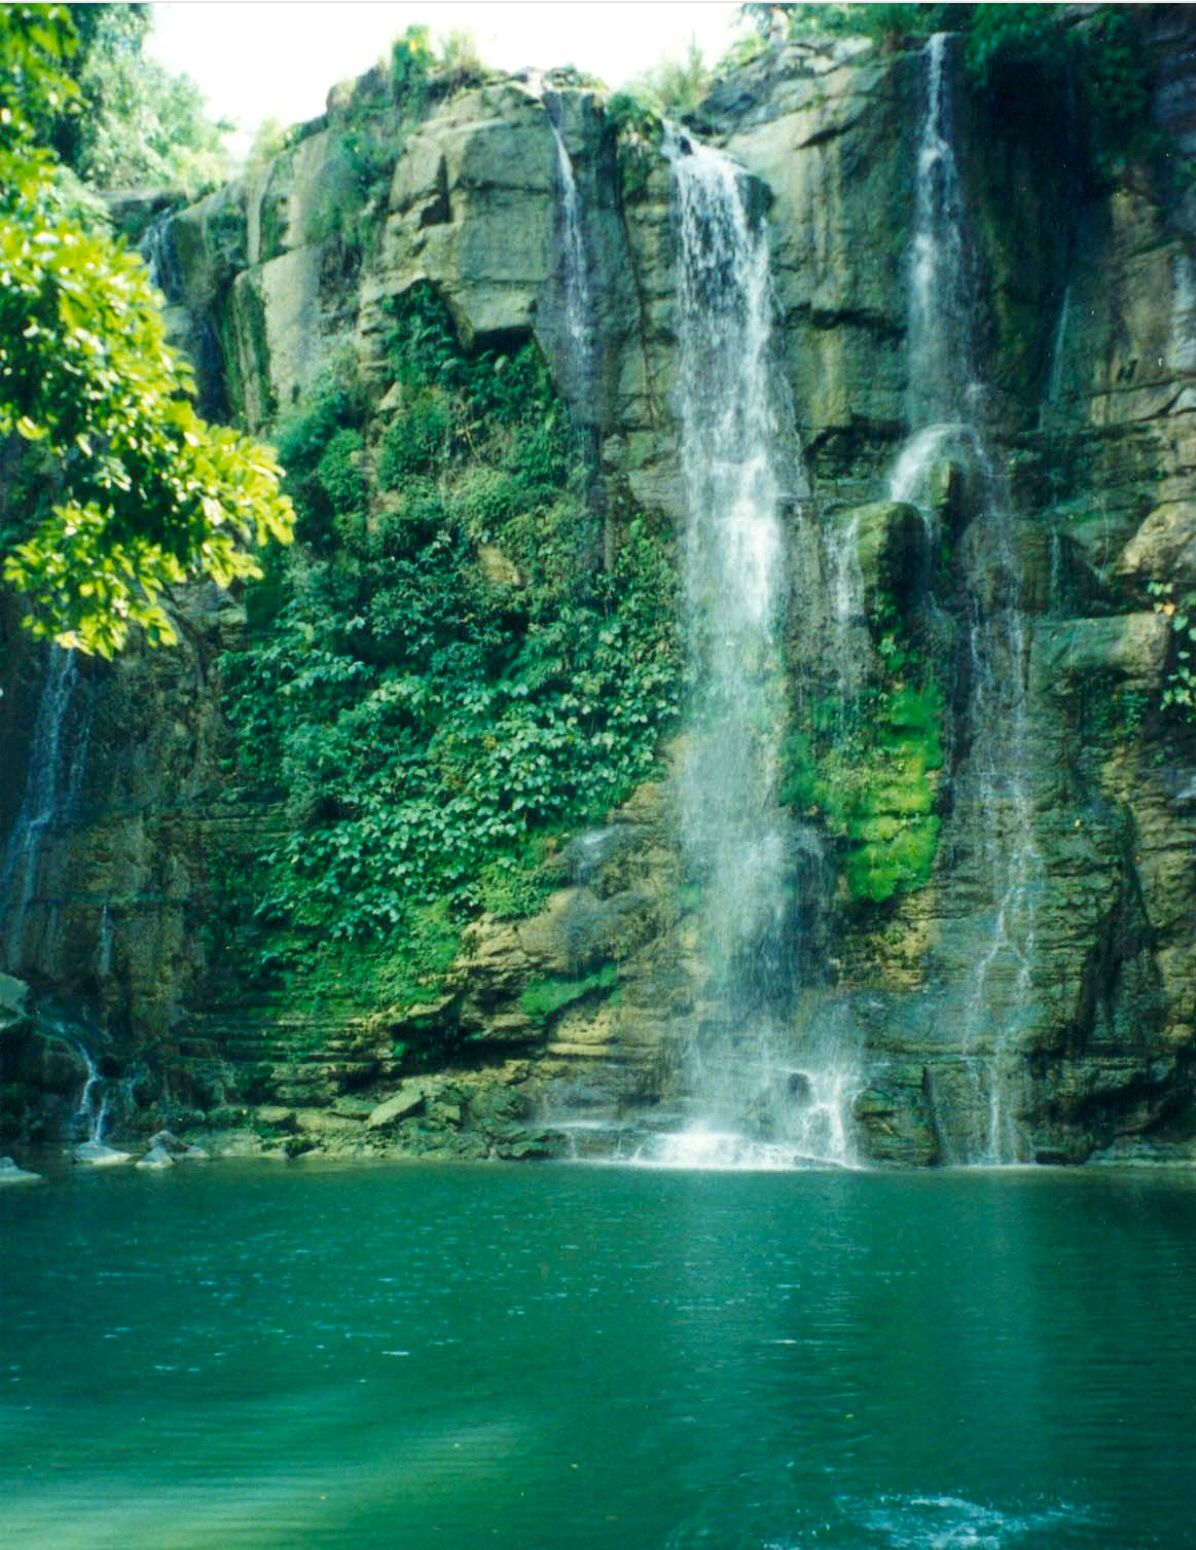 Sierra Maestra Waterfalls Santiago De Cuba Cuba Waterfalls Pinterest Vacation Future